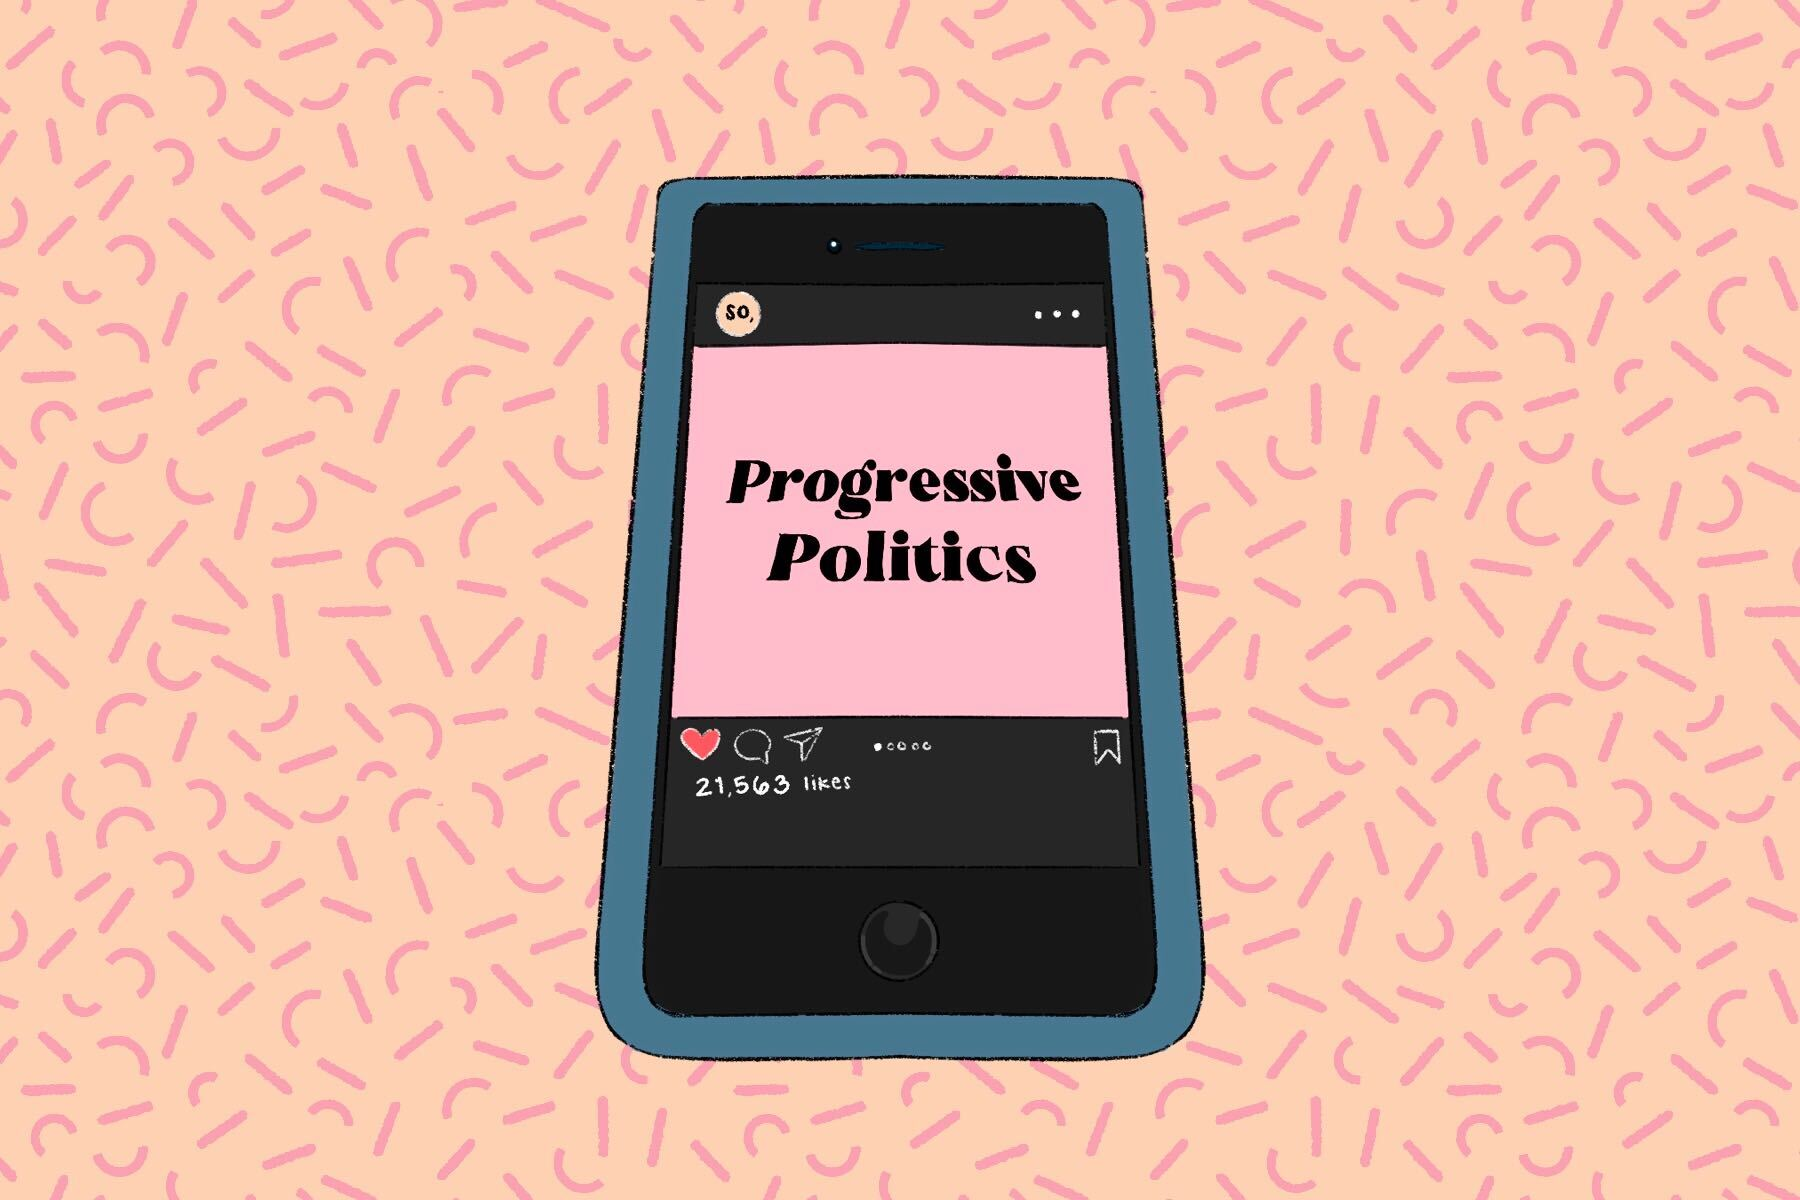 In an article about @soyouwanttotalkabout, an illustration by Daisy Daniel's of a phone with the words progressive politics on it